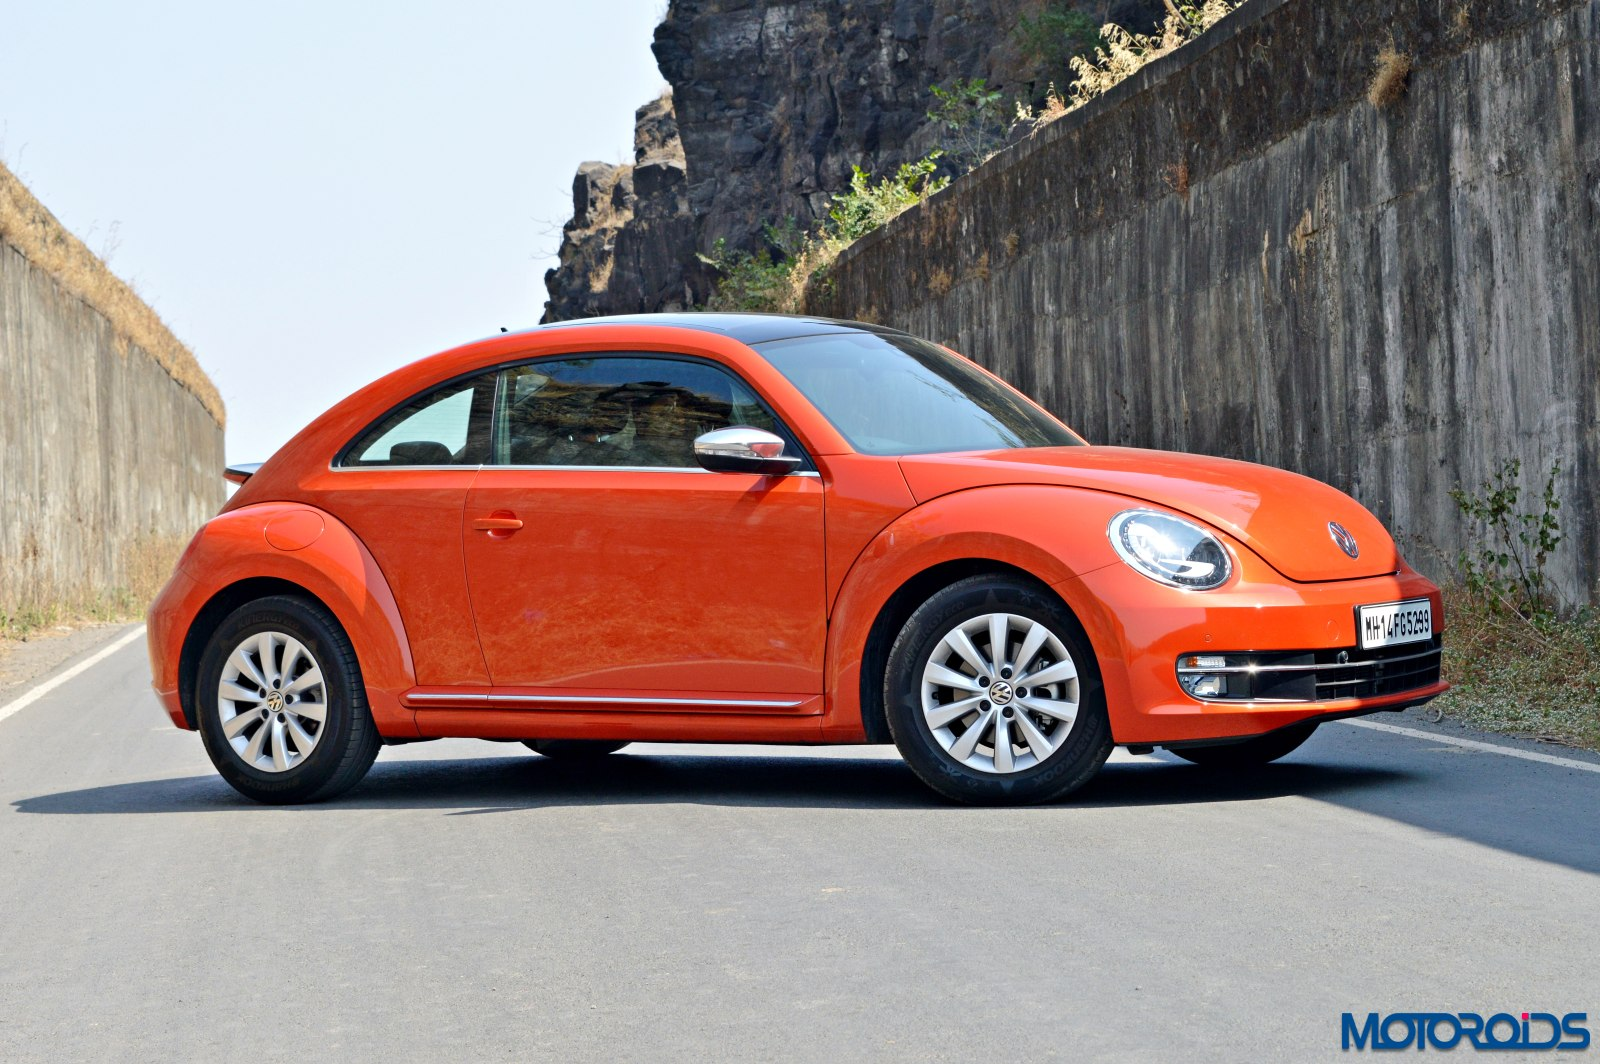 new 2016 vw volkswagen beetle 18. Black Bedroom Furniture Sets. Home Design Ideas